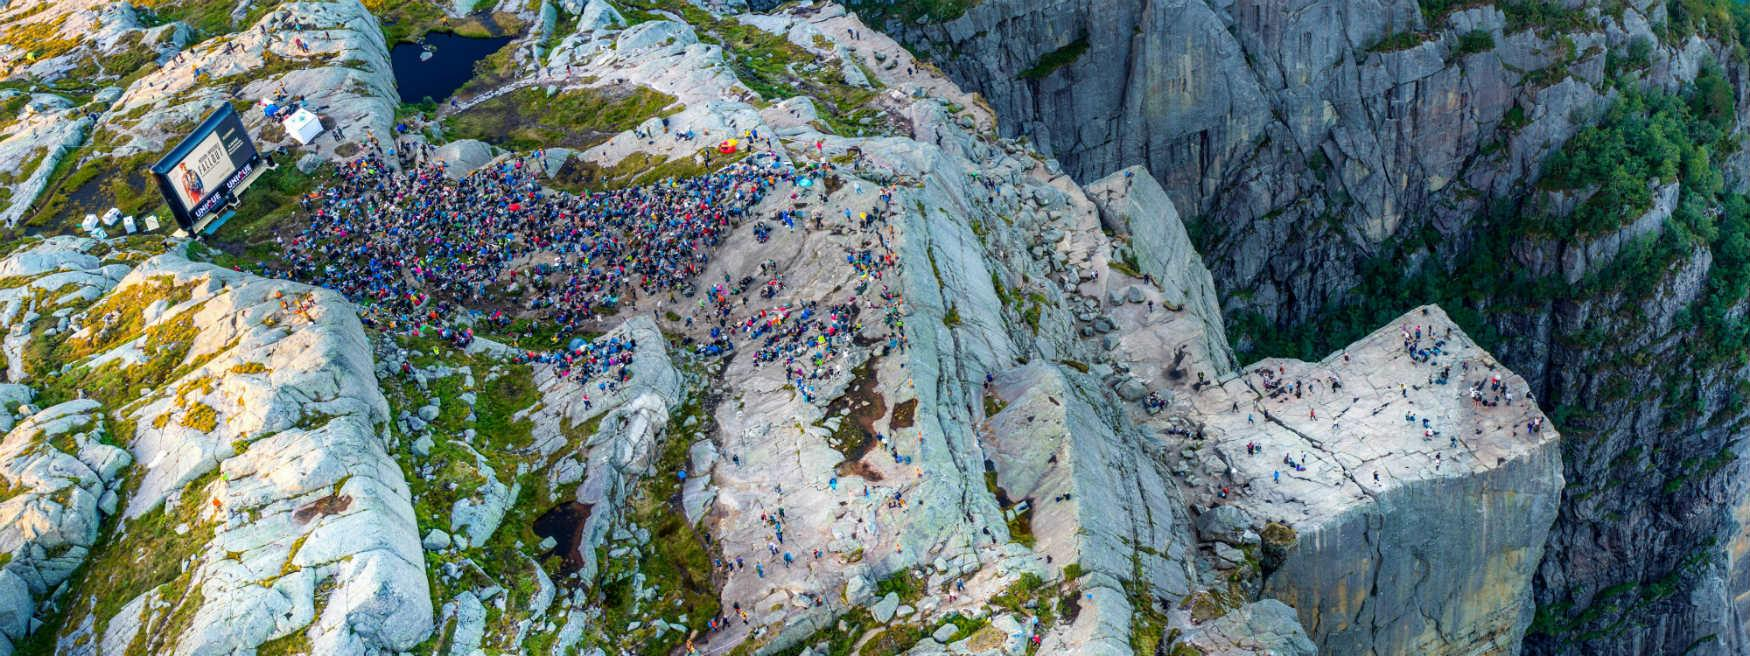 Film screening of Mission Impossible Fallout at Preikestolen